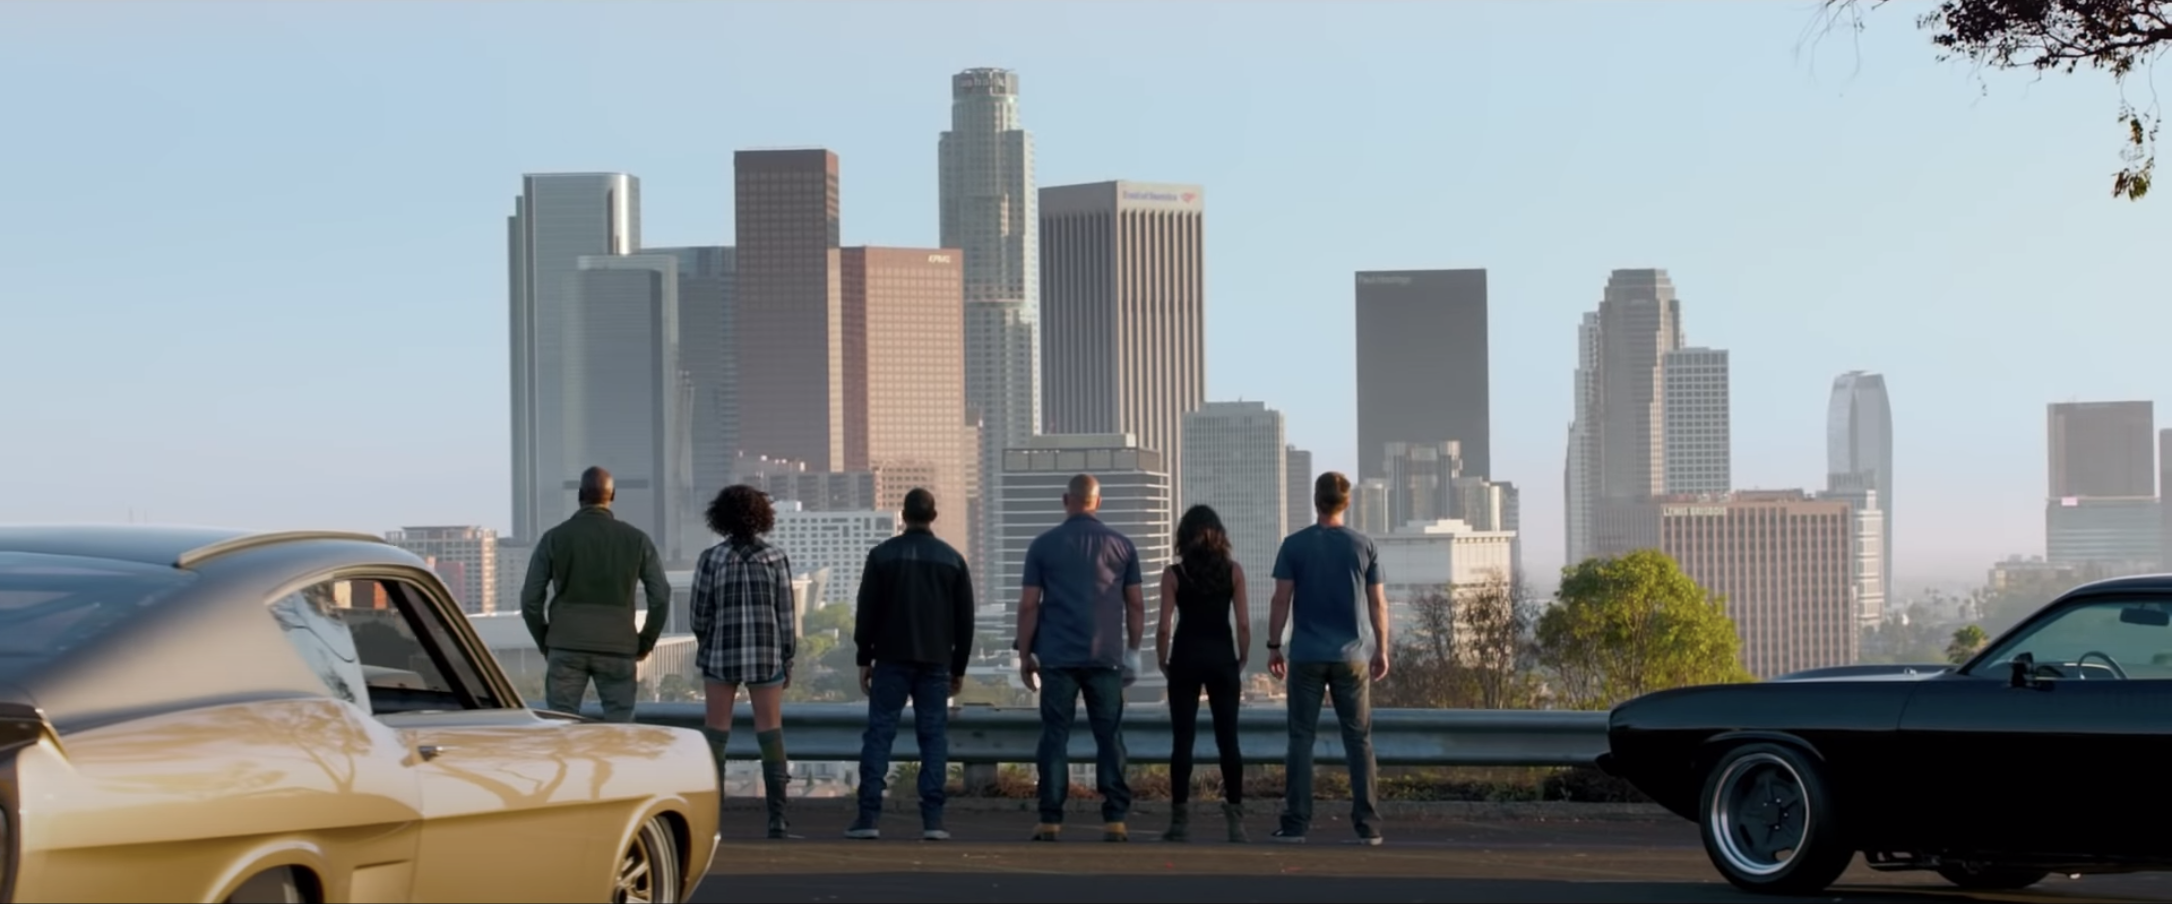 The crew looking at the city skyline